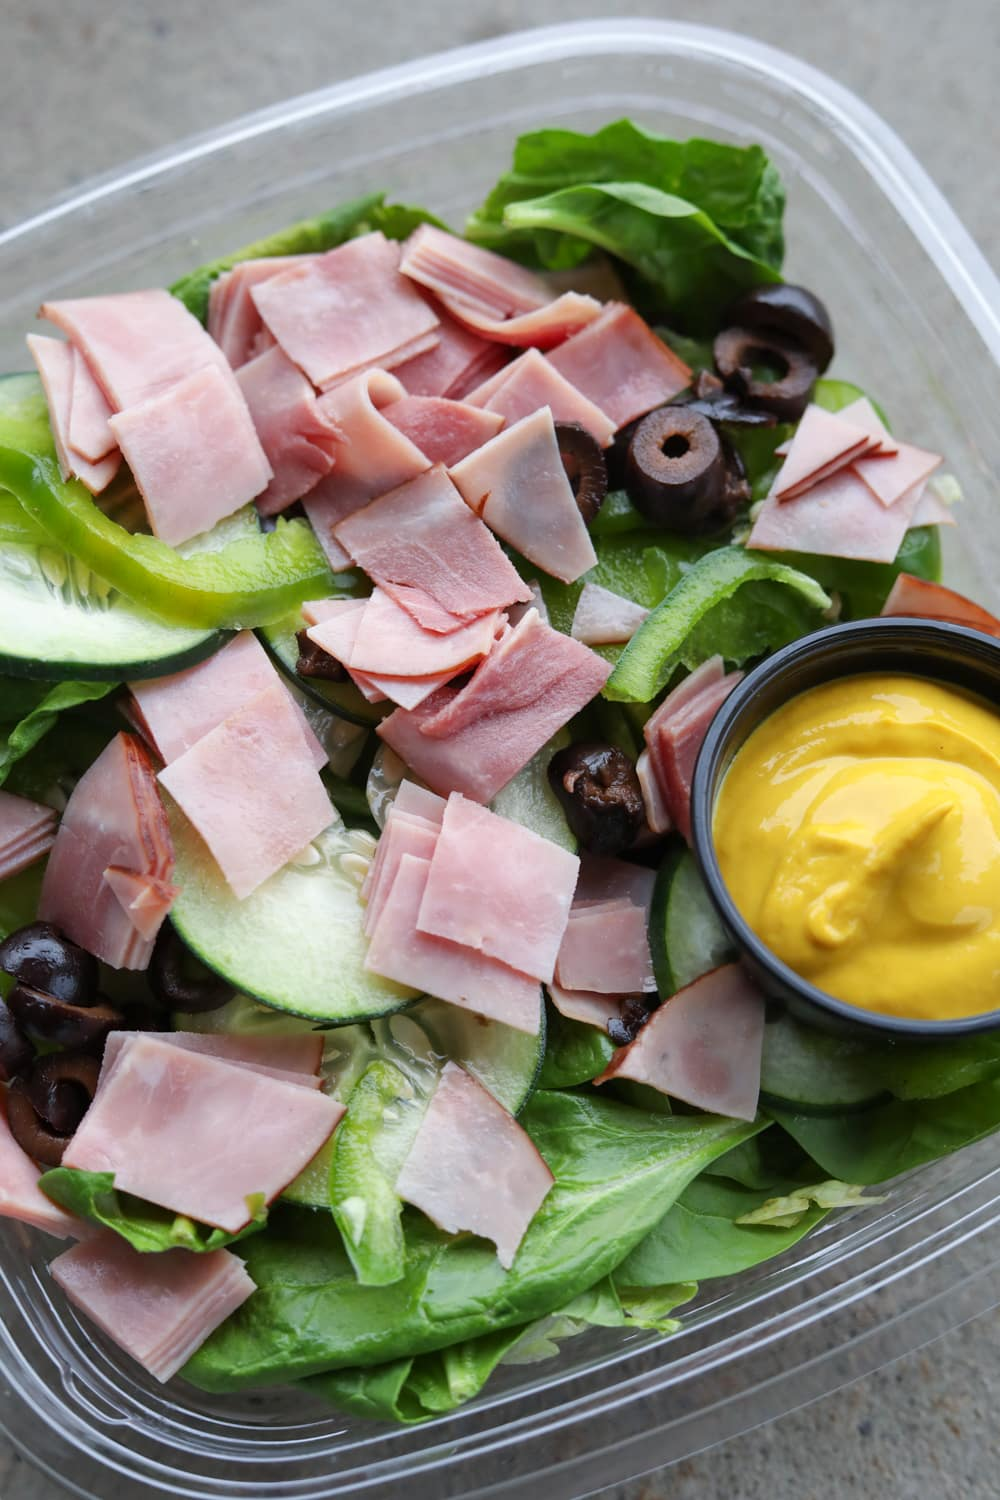 A plastic container filled with green vegetables, black olives, chopped up ham, and a cup of yellow mustard.